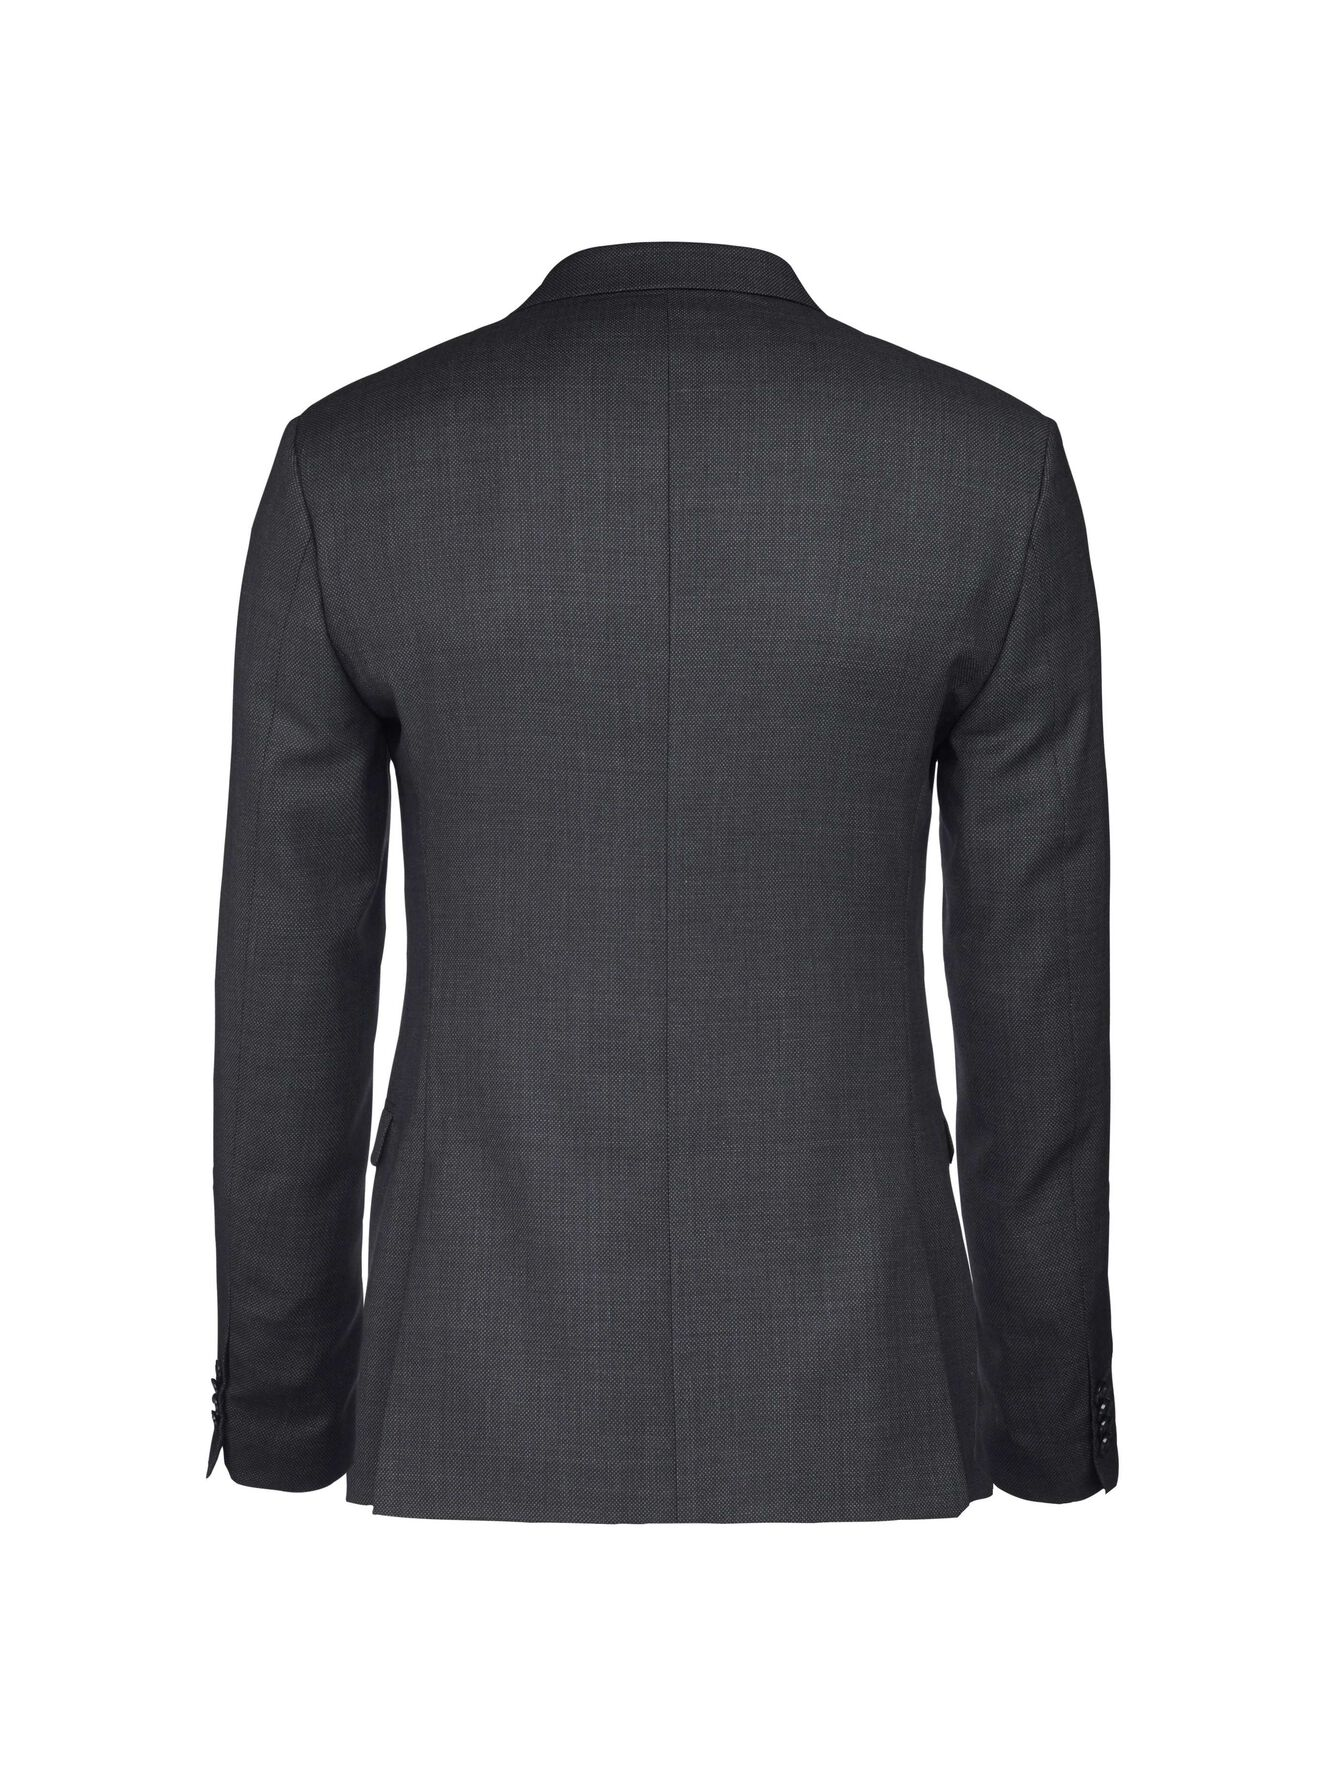 Jil Blazer in Charcoal from Tiger of Sweden